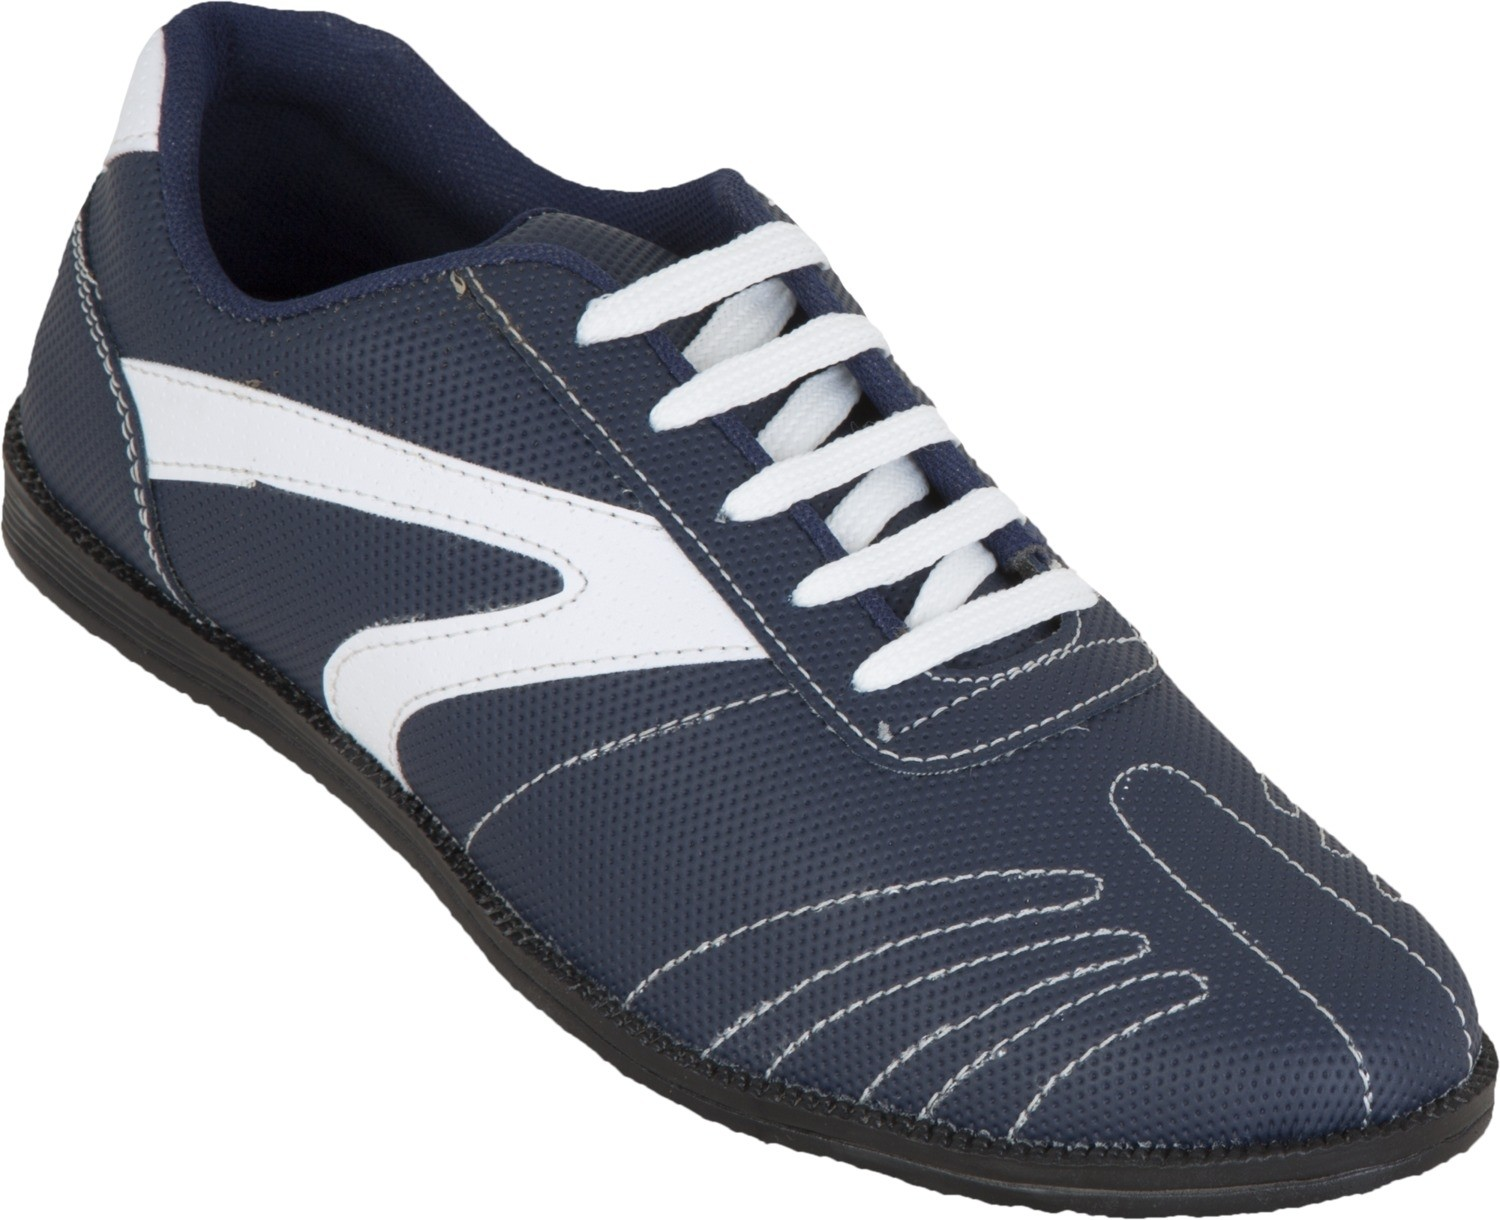 Zovi Blue Textured with White Sneakers(Blue)